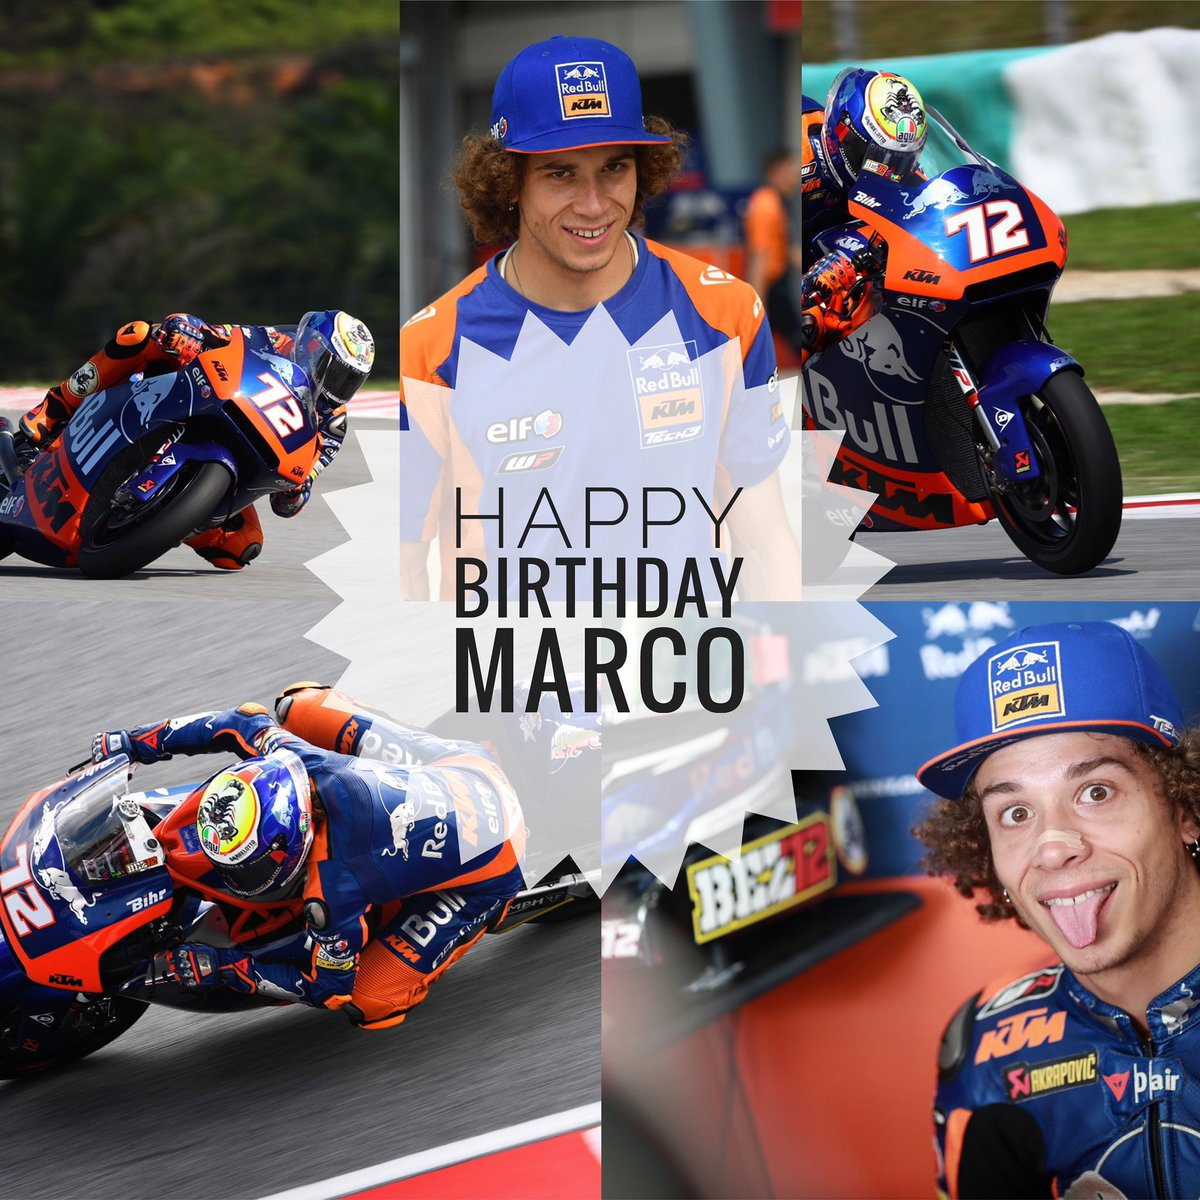 Happy Birthday Marco 🥳🎈🎂 #KTM #Tech3 #MotoGP #Moto2 #Racing #MB72 @MotoGP #HappyBirthday #BirthdayBoy #TantiAuguri